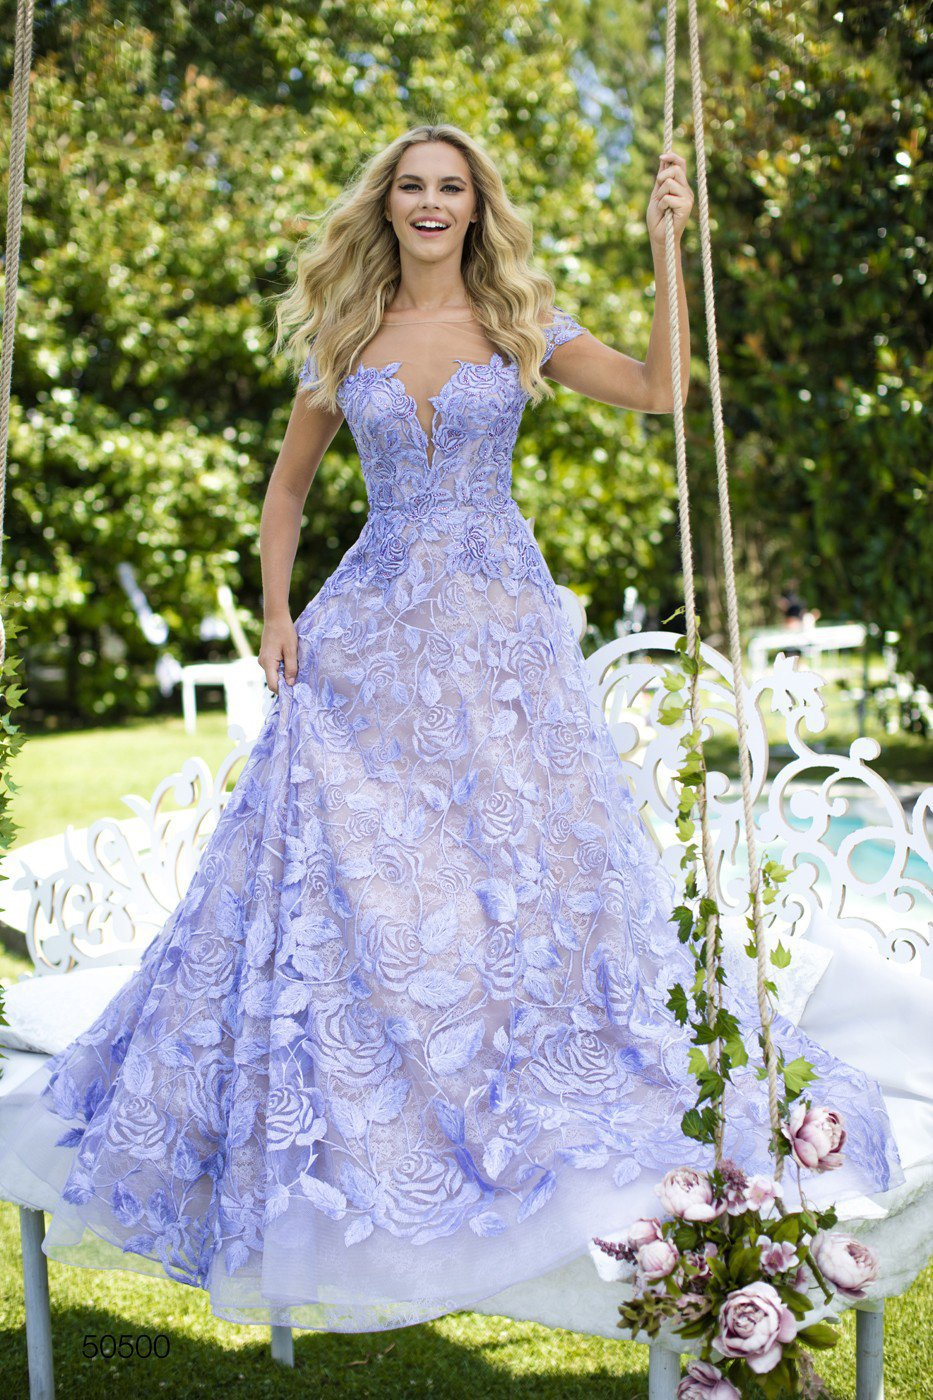 Tarik Ediz - 50500 Floral Lace Appliqued A-Line Prom Gown In Purple